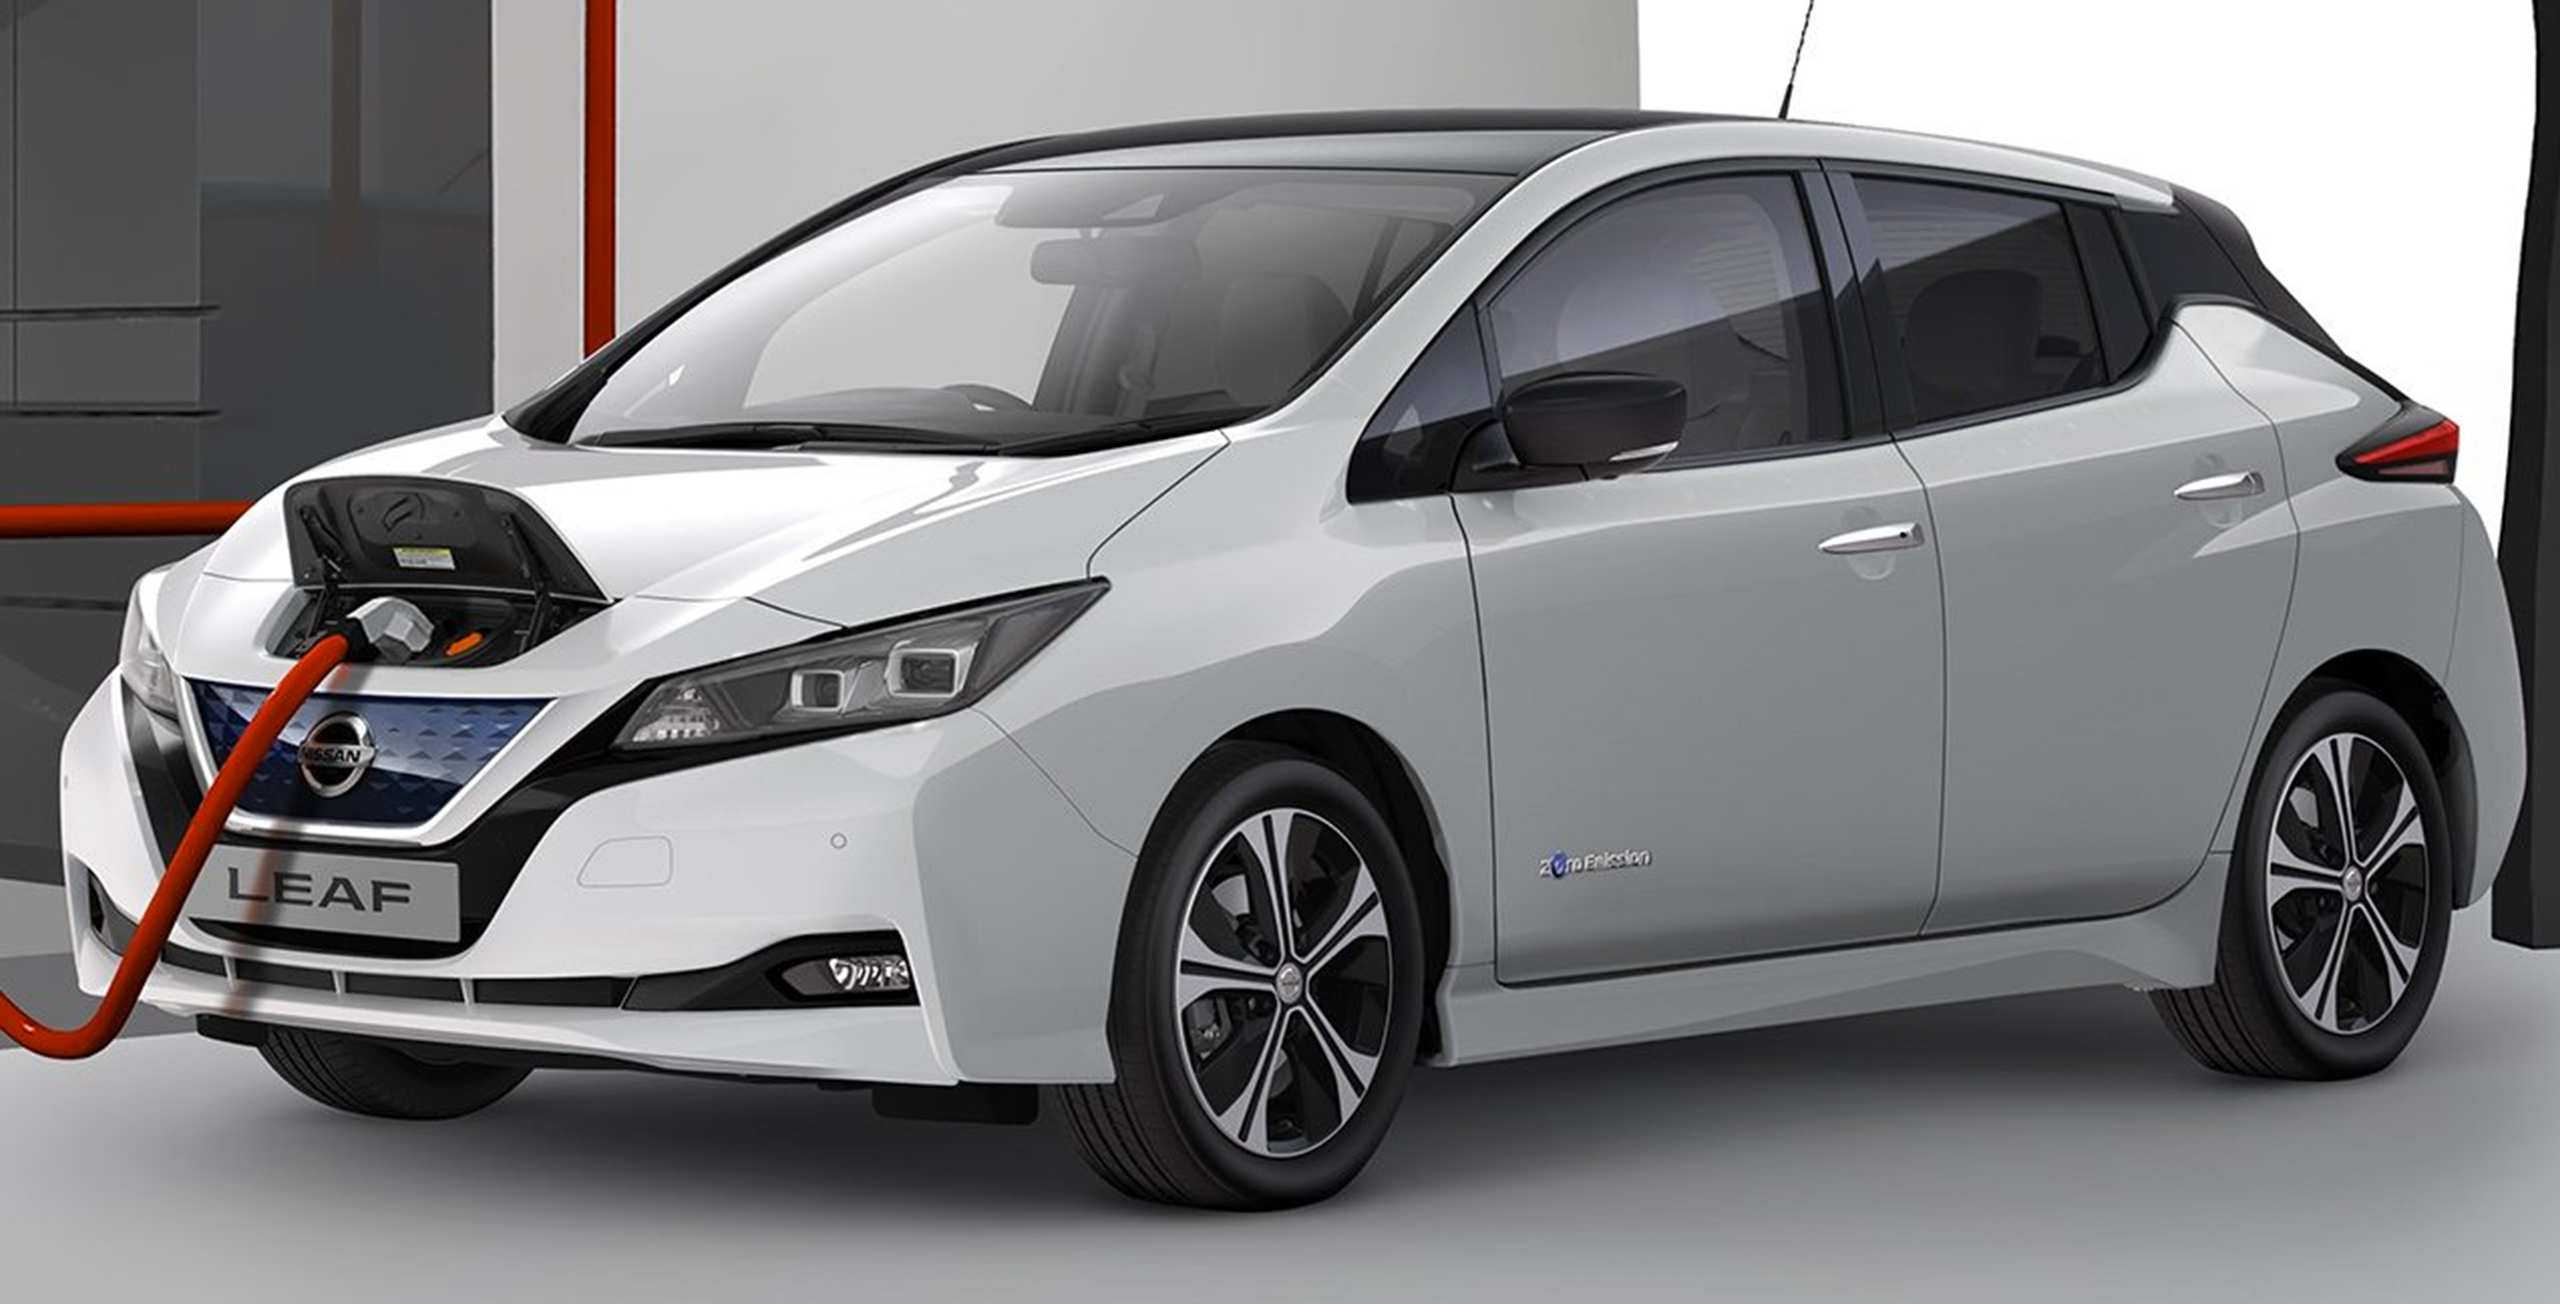 39 All New 2019 Nissan Leaf Range Price And Review